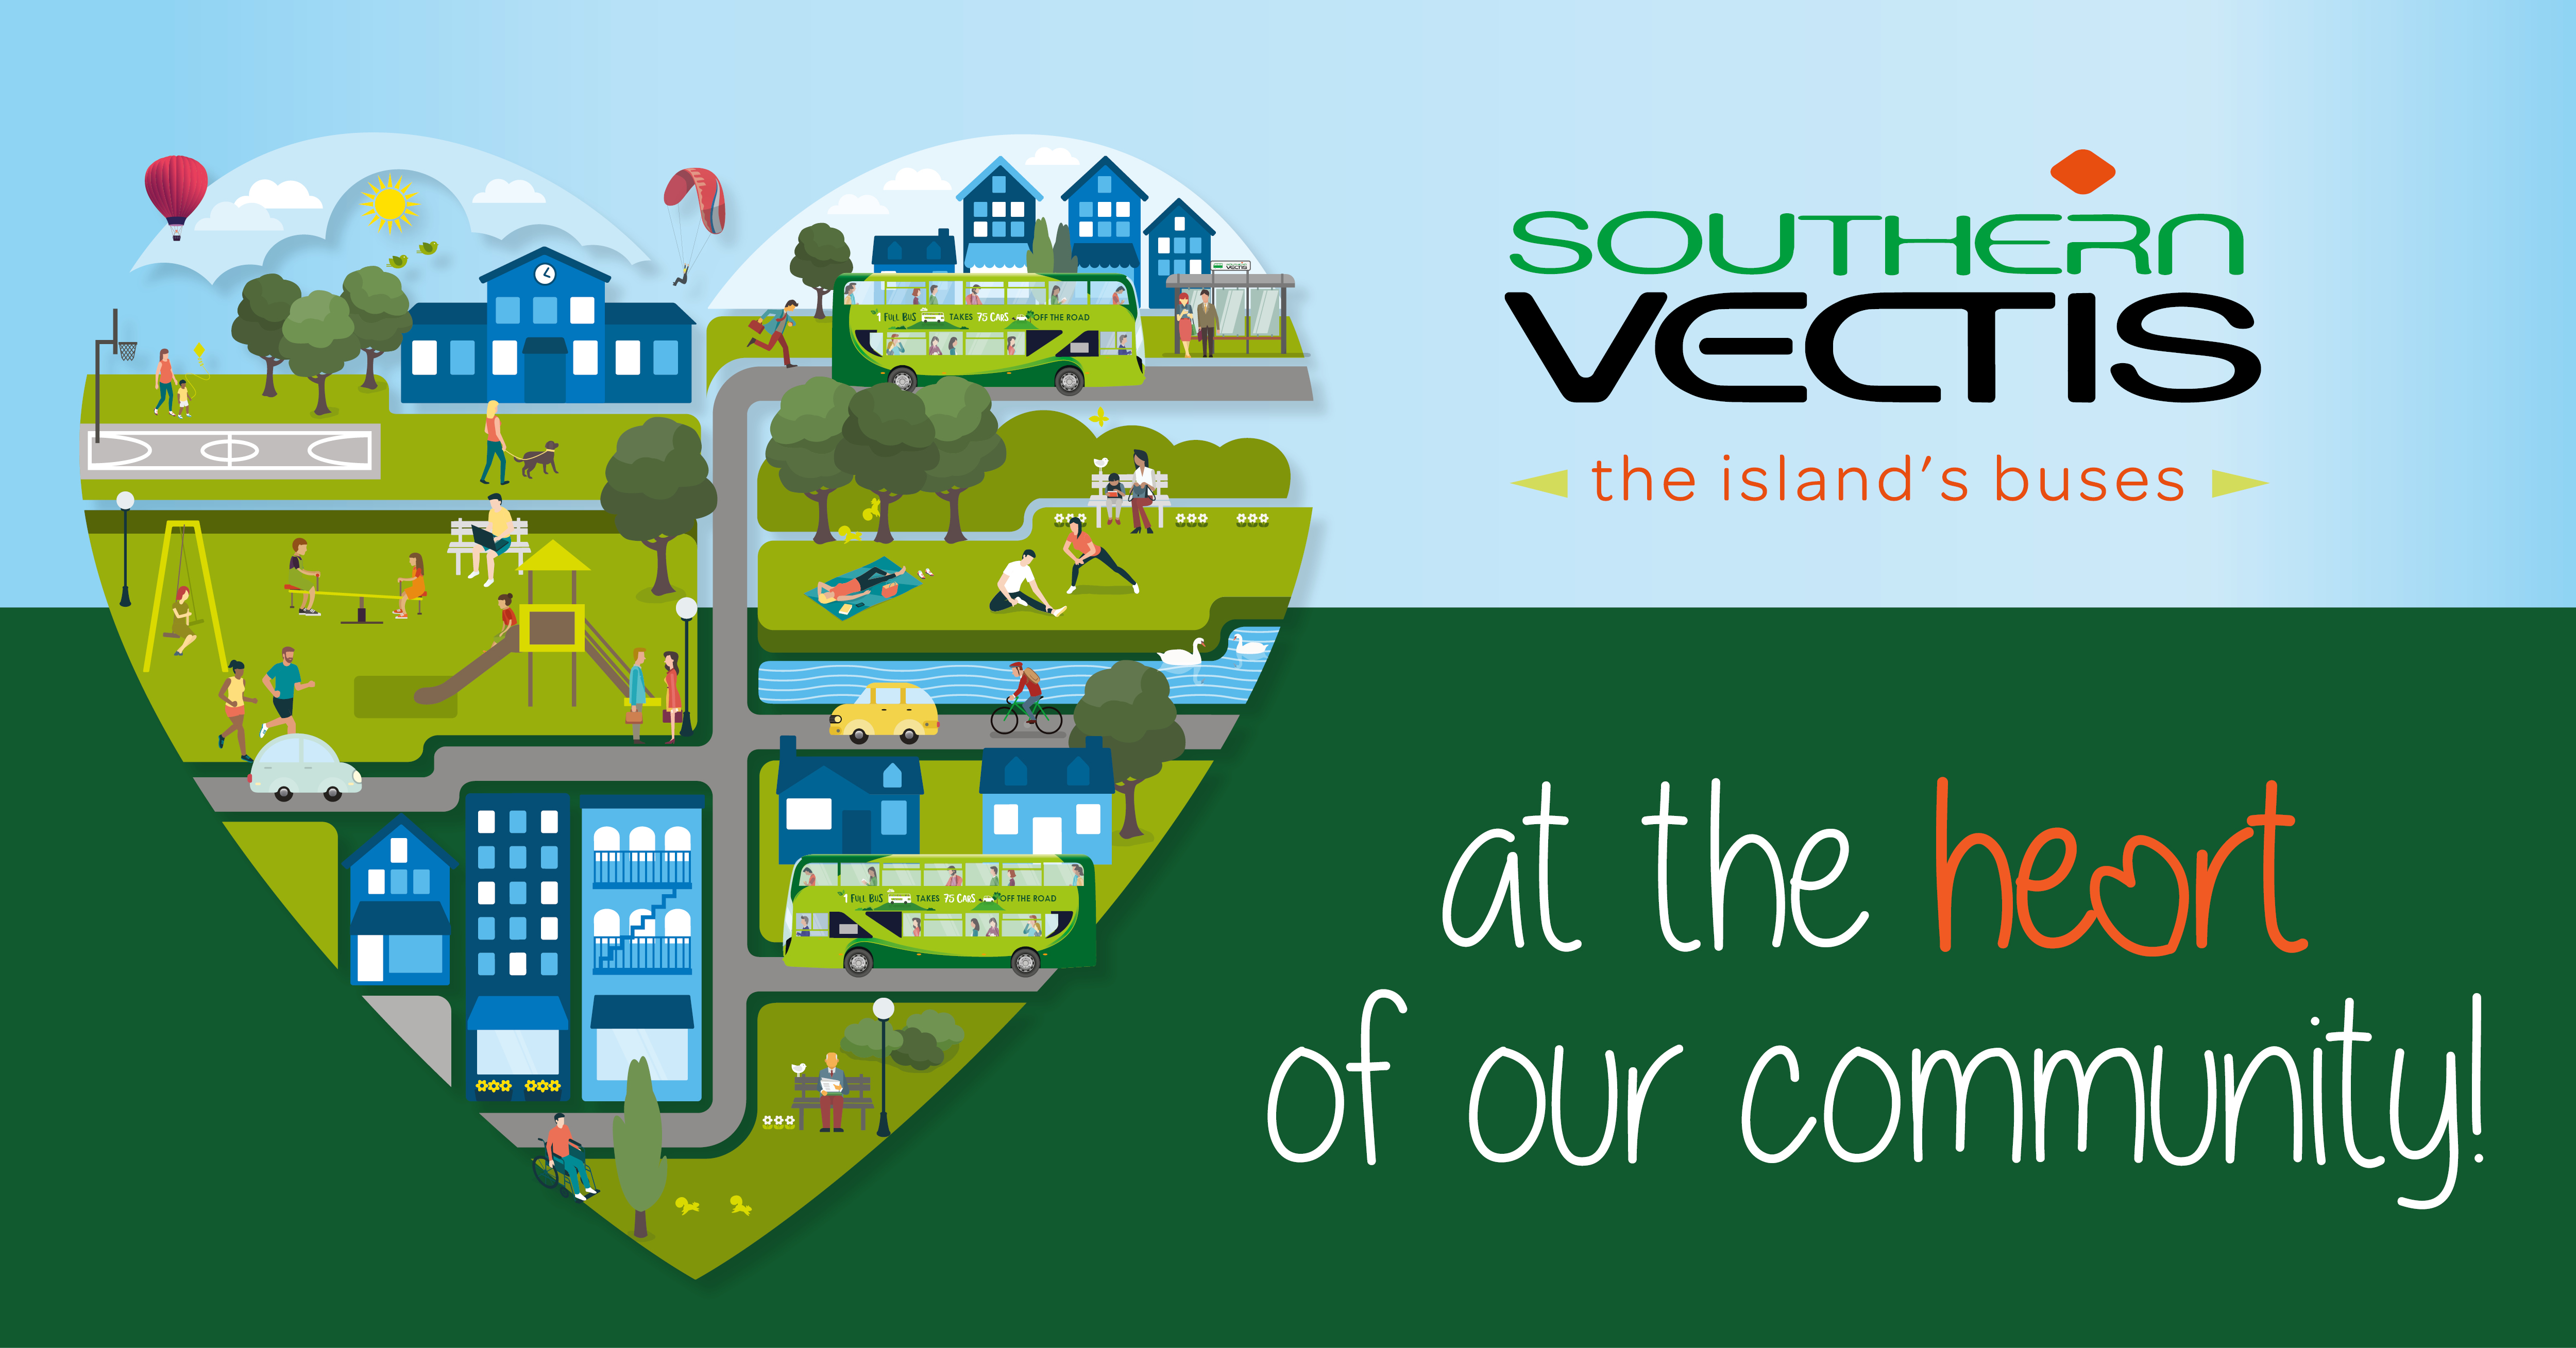 illustrated heart Southern Vectis community fund at the heart of our community!